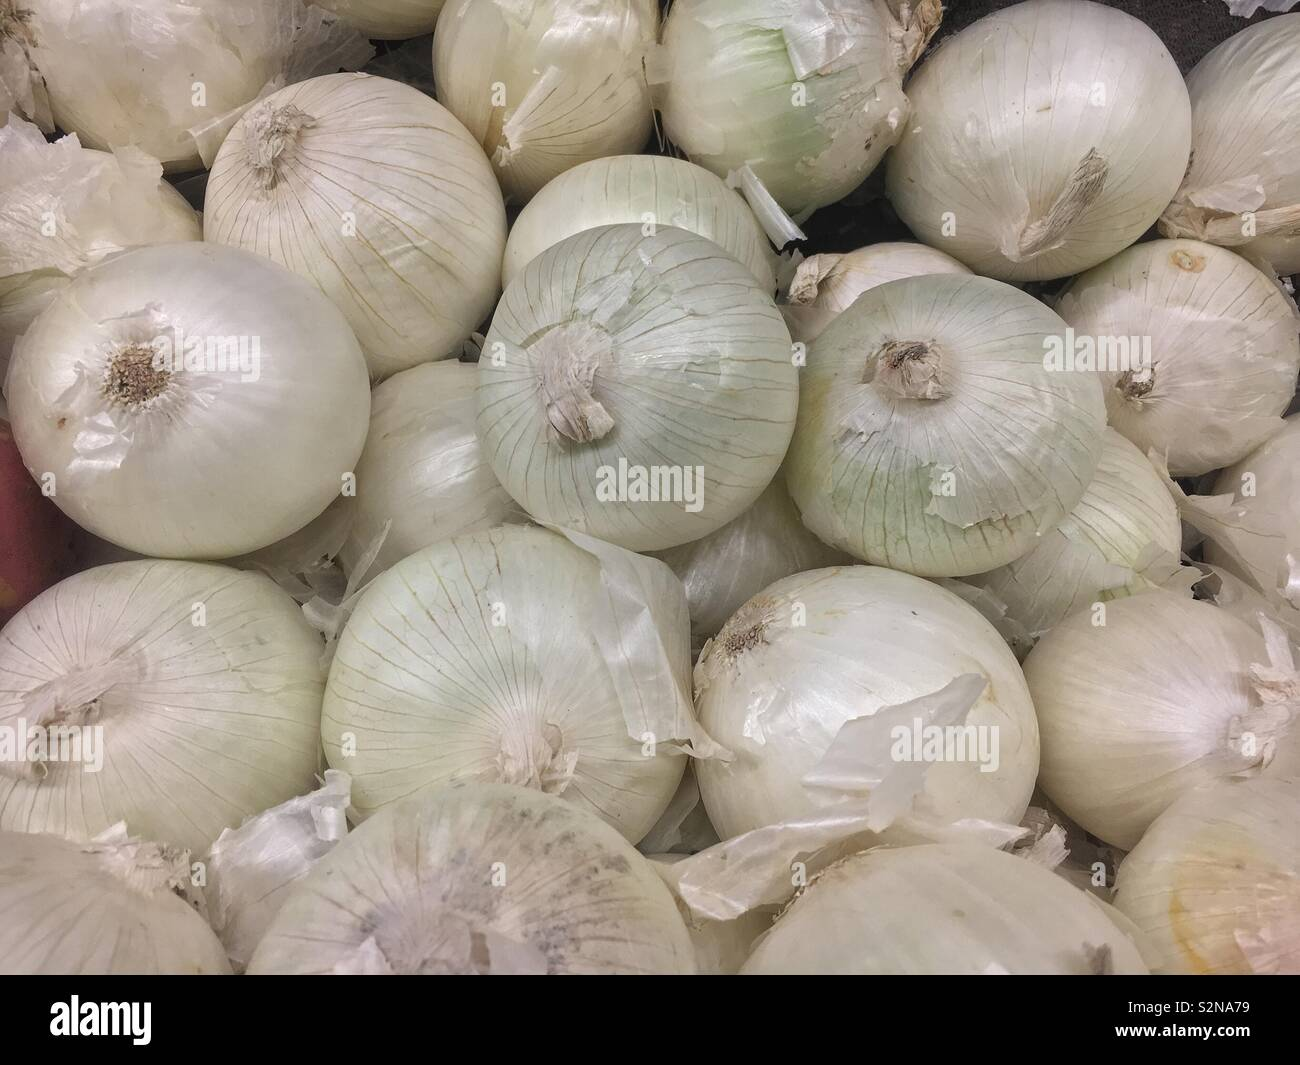 Raw white onions on display and for sale at the local produce market. - Stock Image